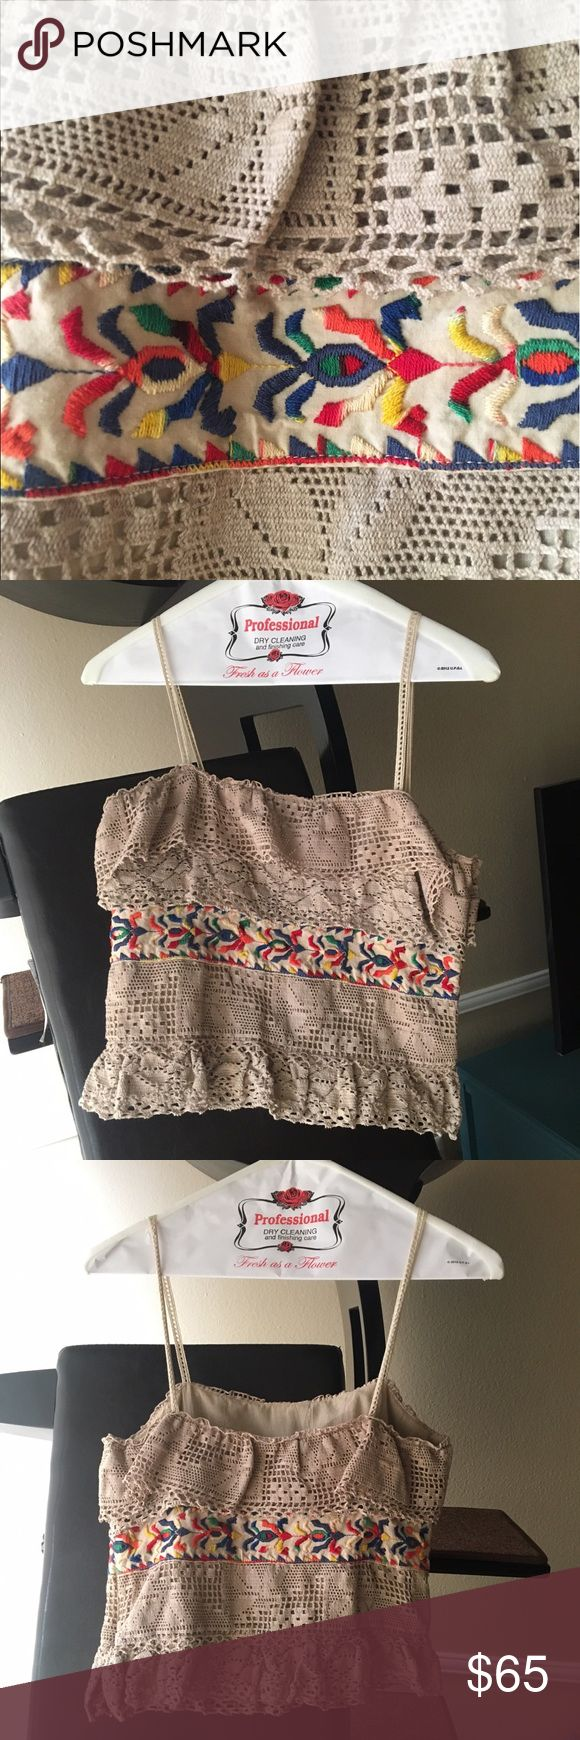 Boho chic Anna Sui lace embroidered crop top Embroidered and fully lined. Crocheted. Side zipper. Boxy fit. Delicate straps. Perfect summer top to pair with distressed denim shorts or crisp white pants. Anna Sui Tops Crop Tops